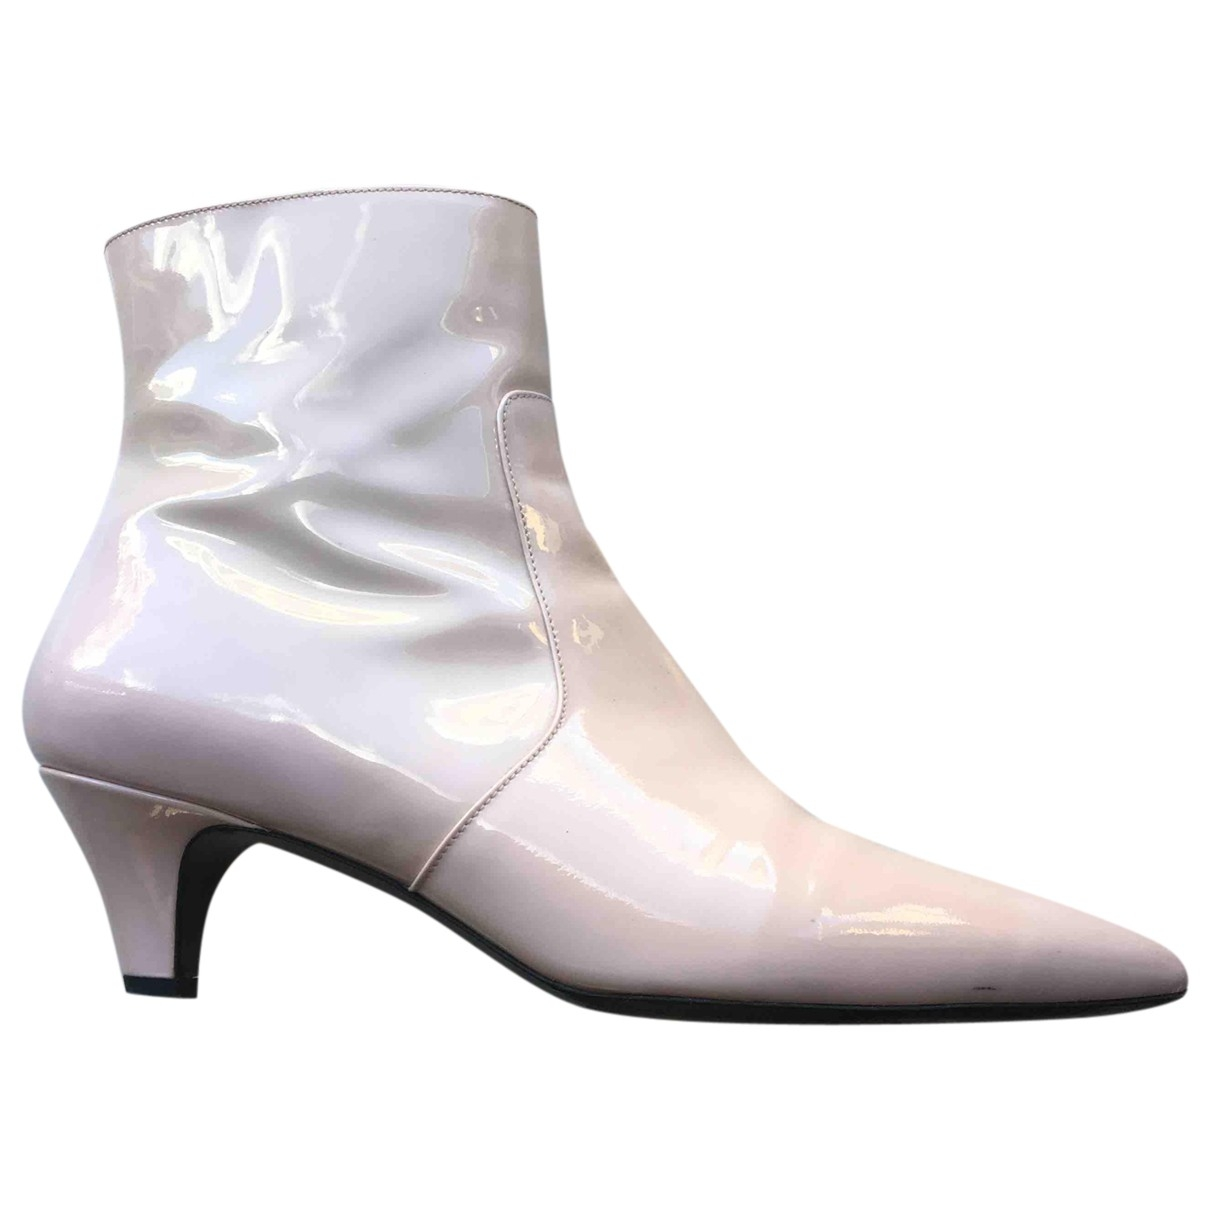 Calvin Klein 205w39nyc \N Pink Patent leather Ankle boots for Women 38 EU